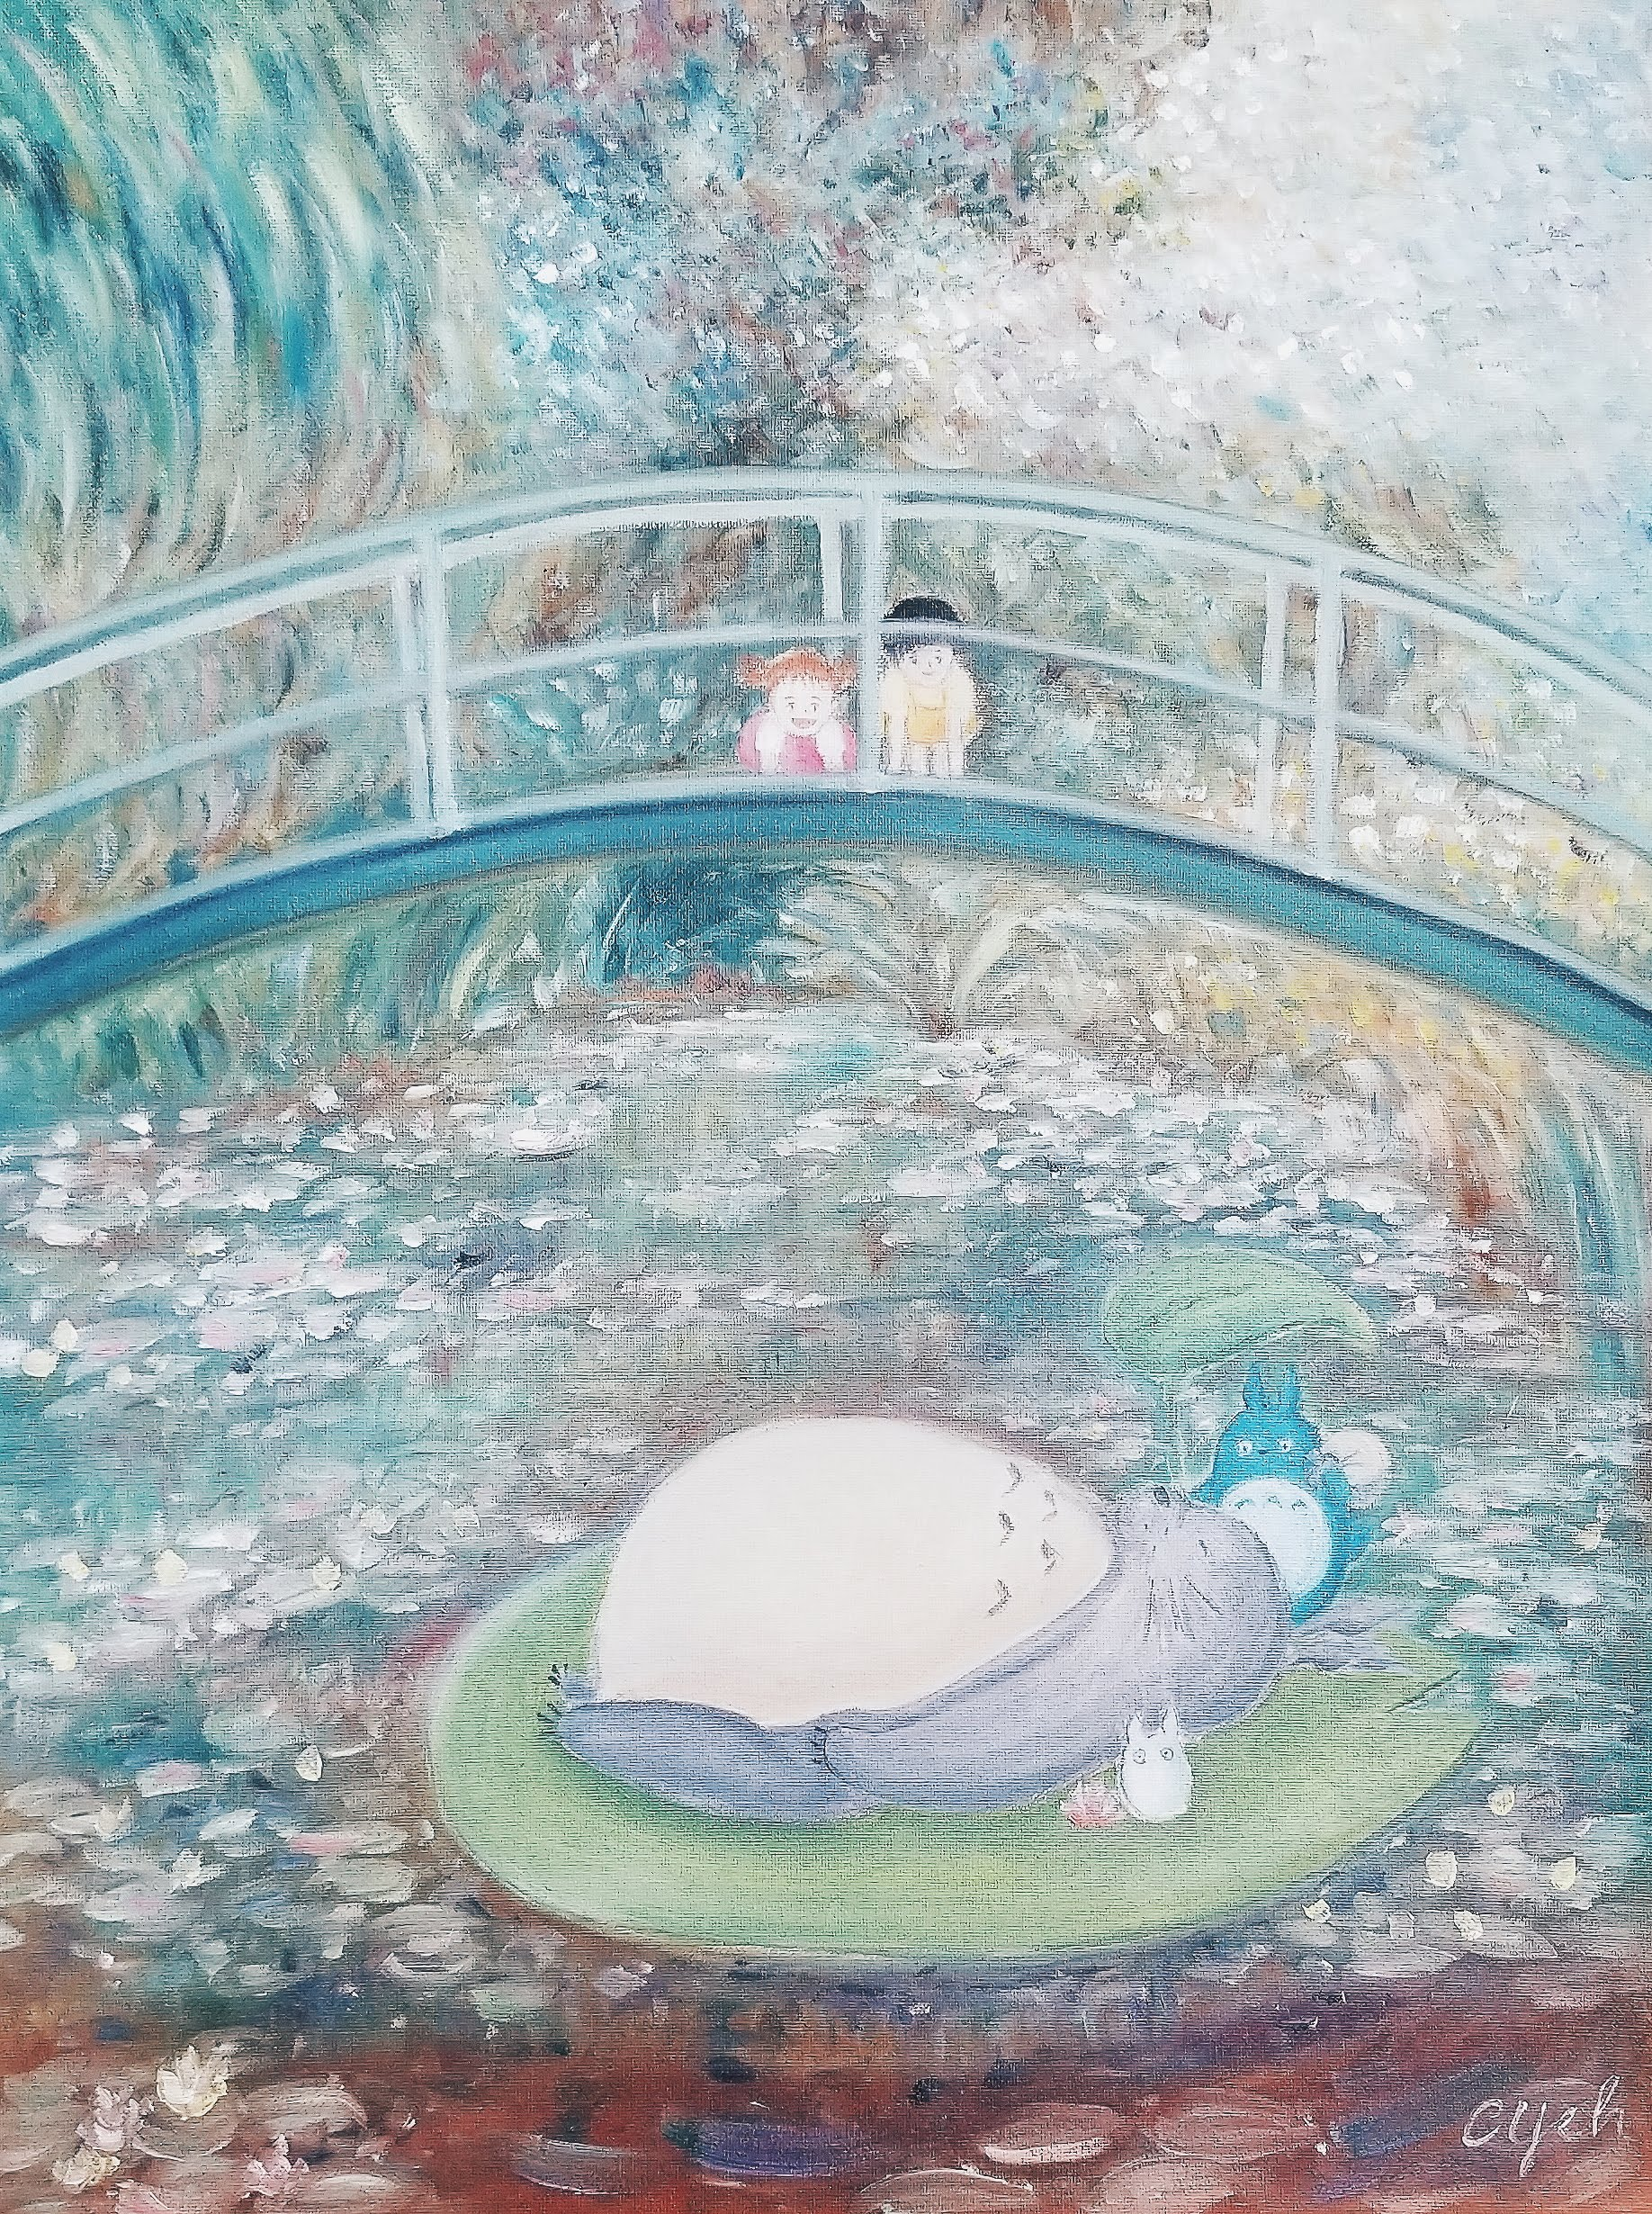 Totoro & the Lily Pond - Studio Ghibli x Monet (2019)